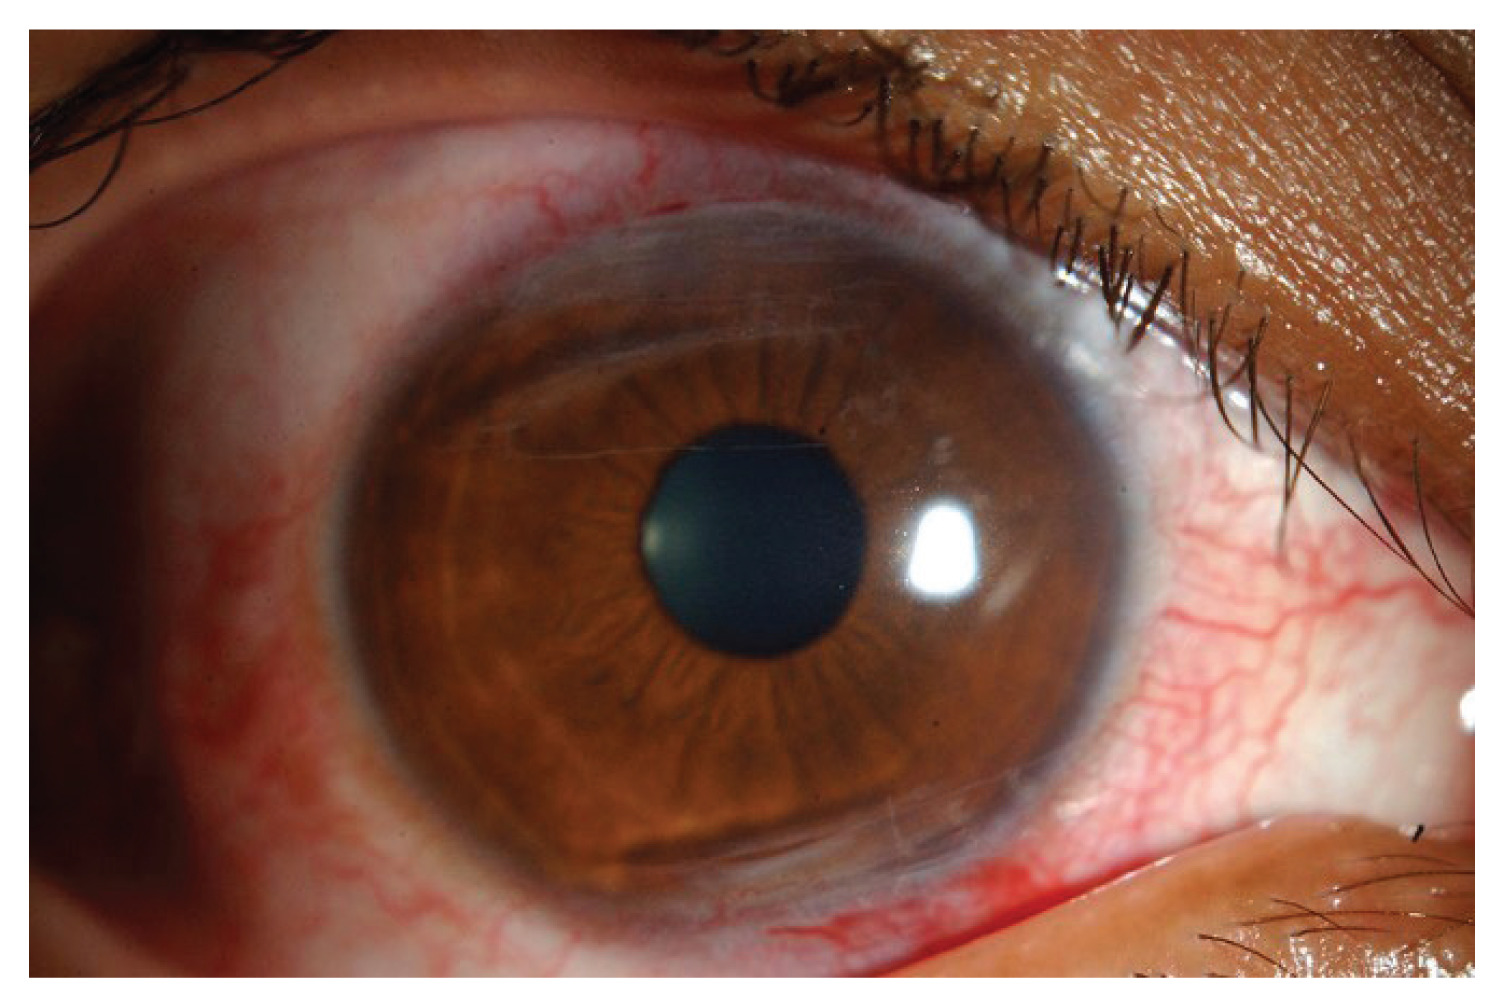 Self-inflicted eye injury | Annals of Saudi Medicine